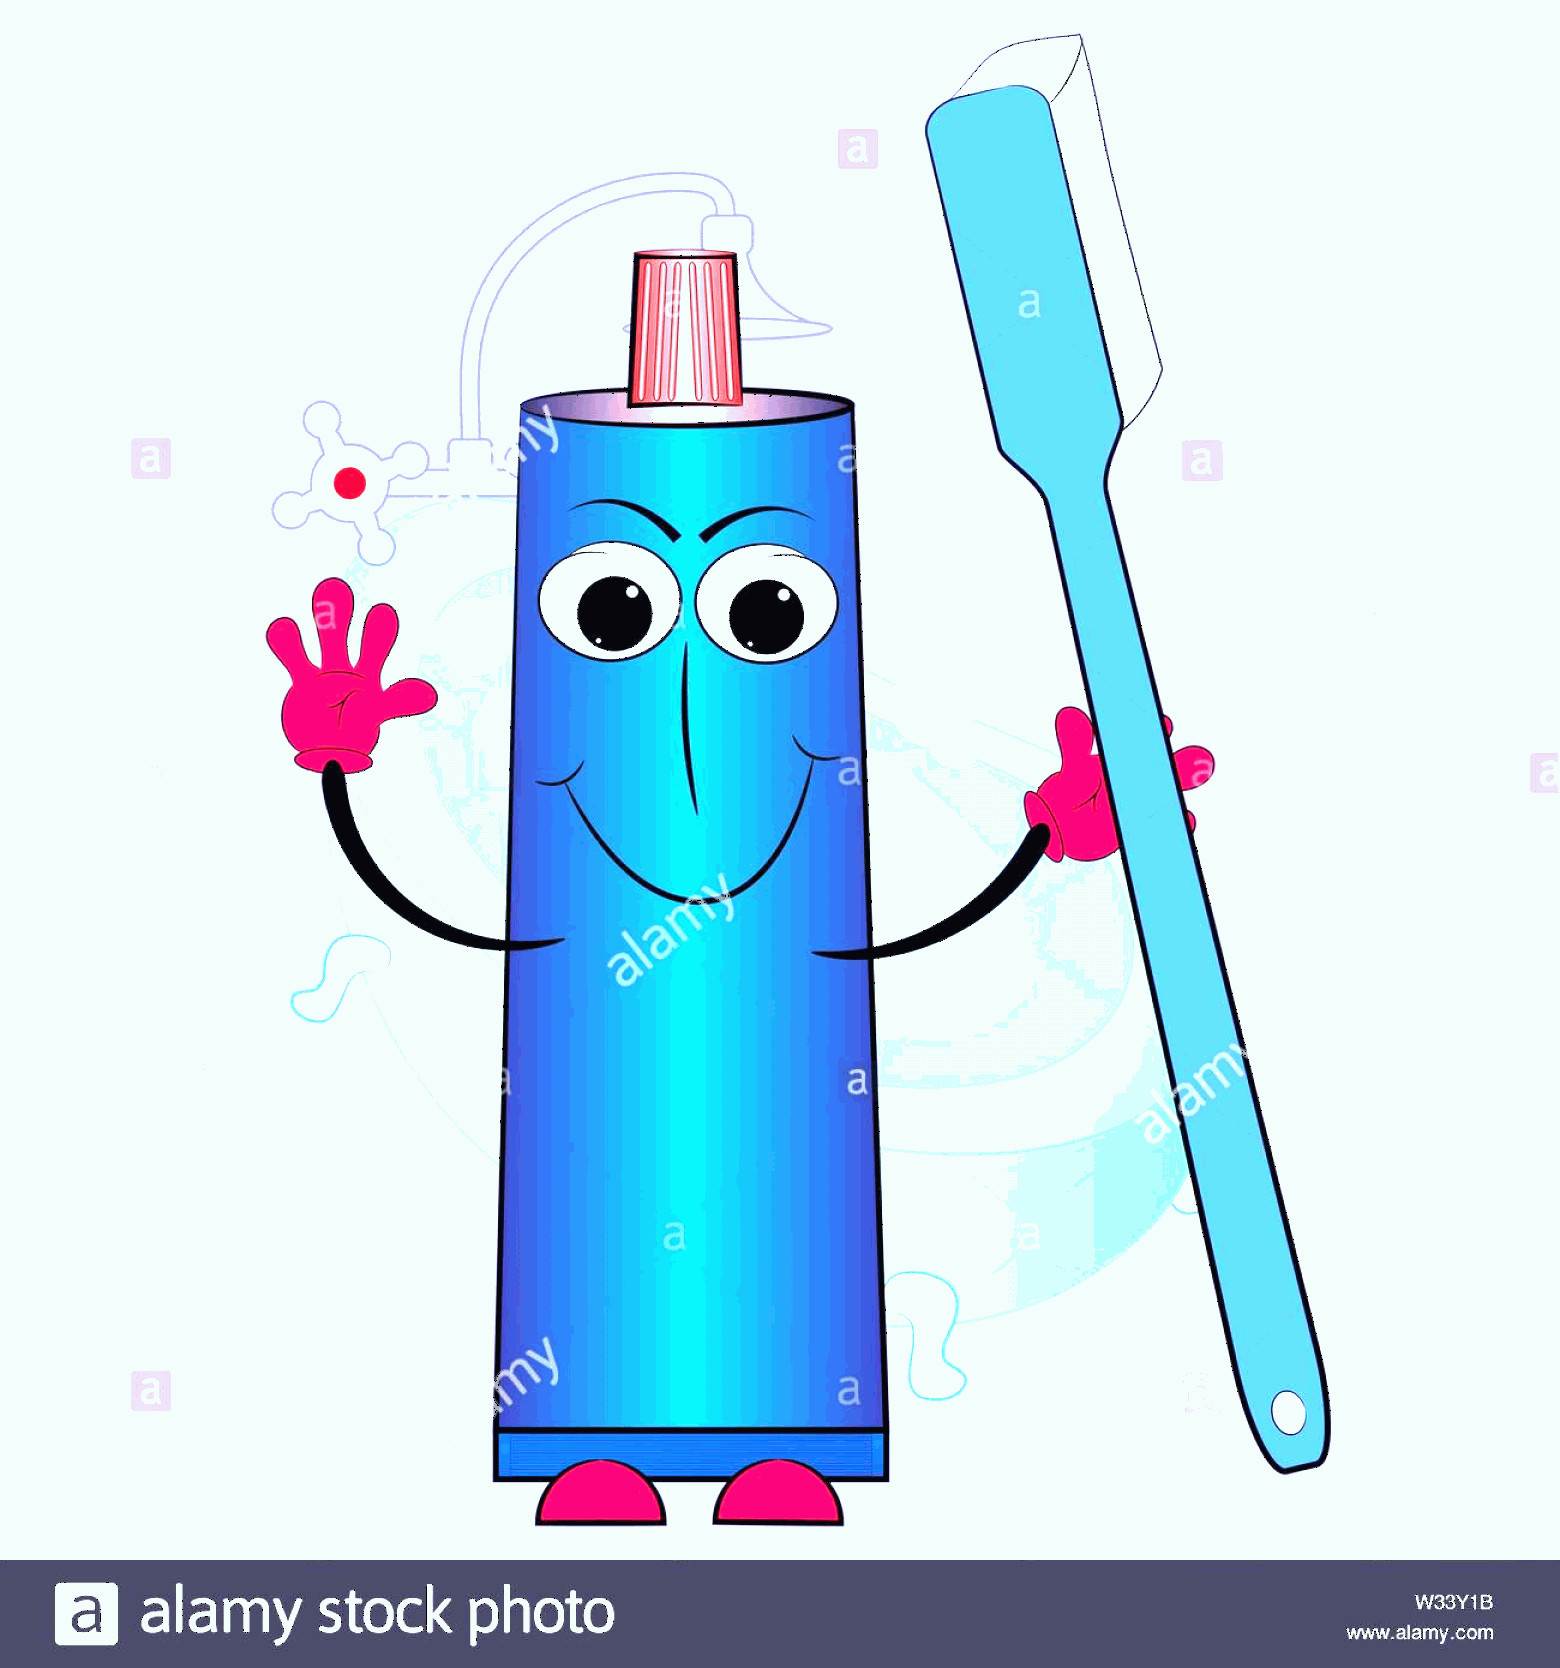 Toothpaste Cartoon Vector: Toothpaste And Toothbrush Cartoon Vector Illustration Image